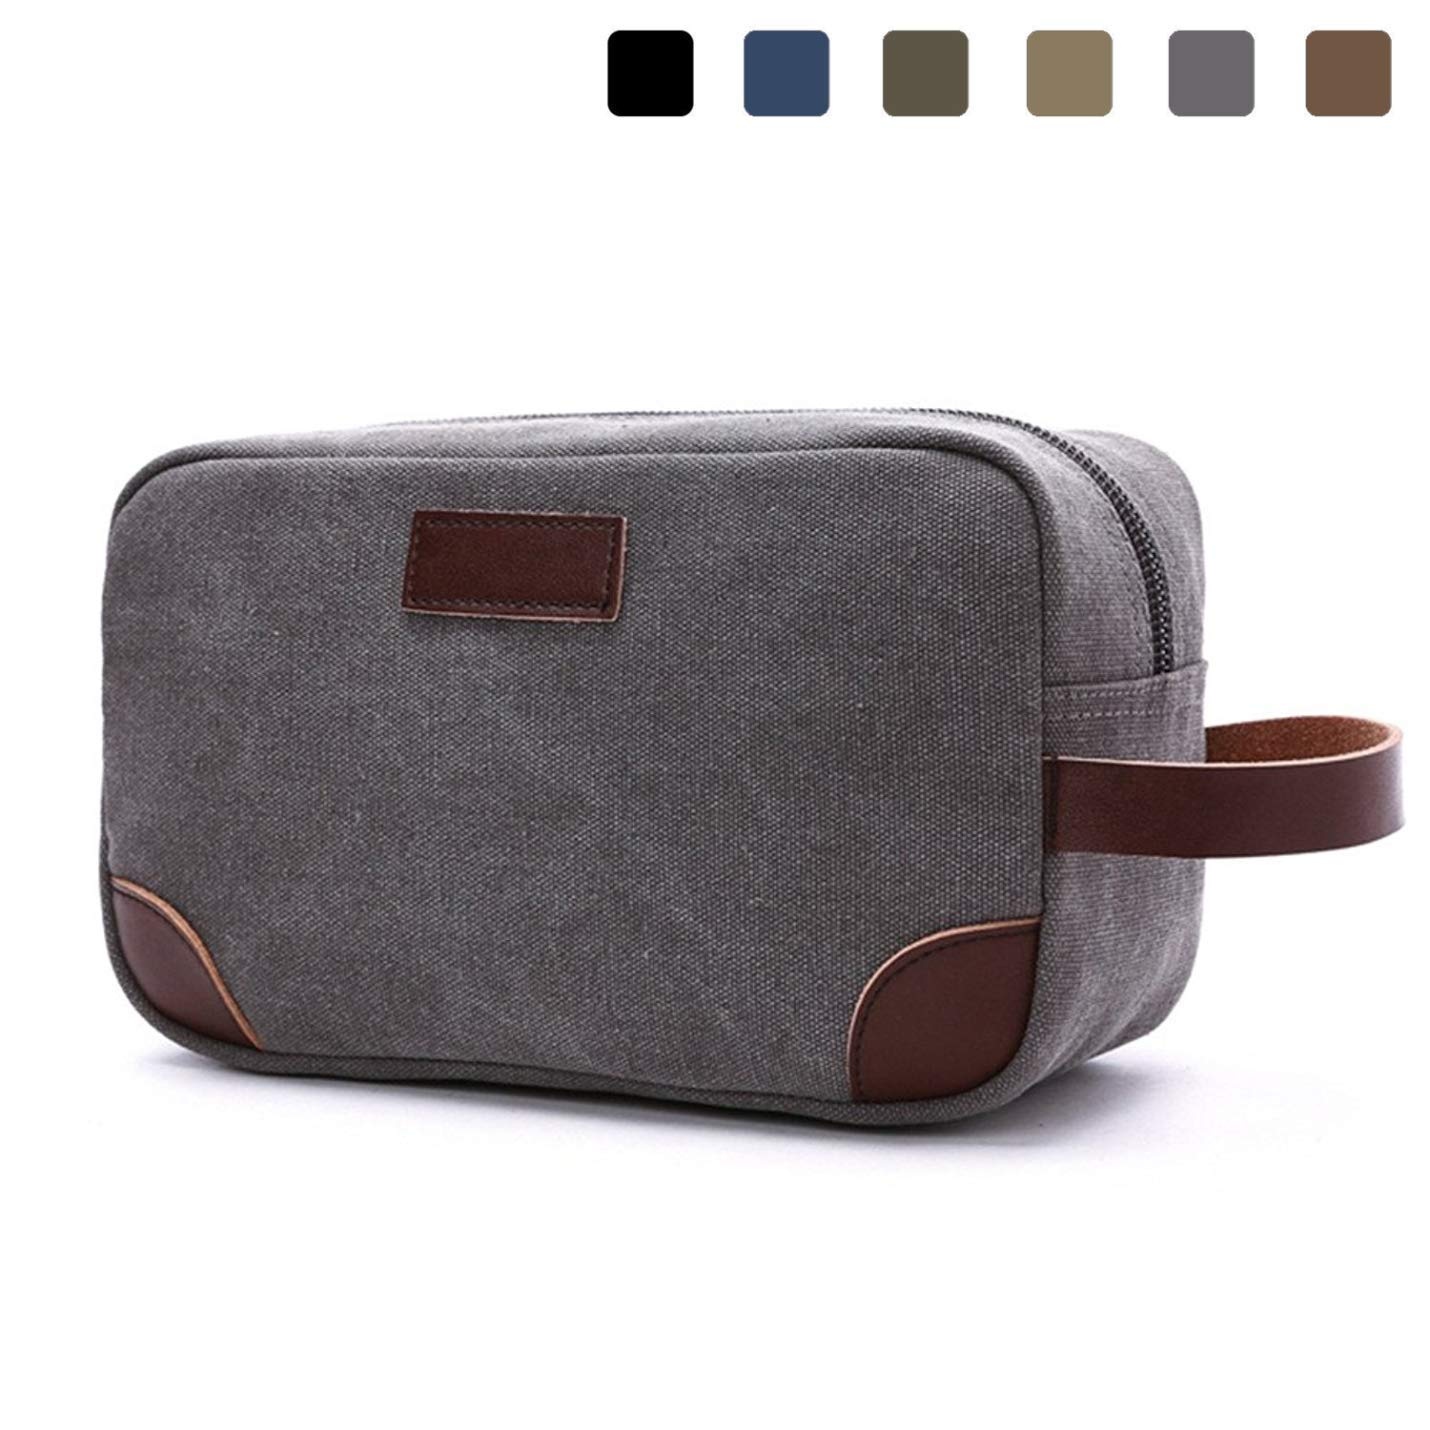 bd59a3522f Get Quotations · Lanivas Canvas Travel Toiletry Bag Vintage Shaving Dopp Kit  with Leather Handle